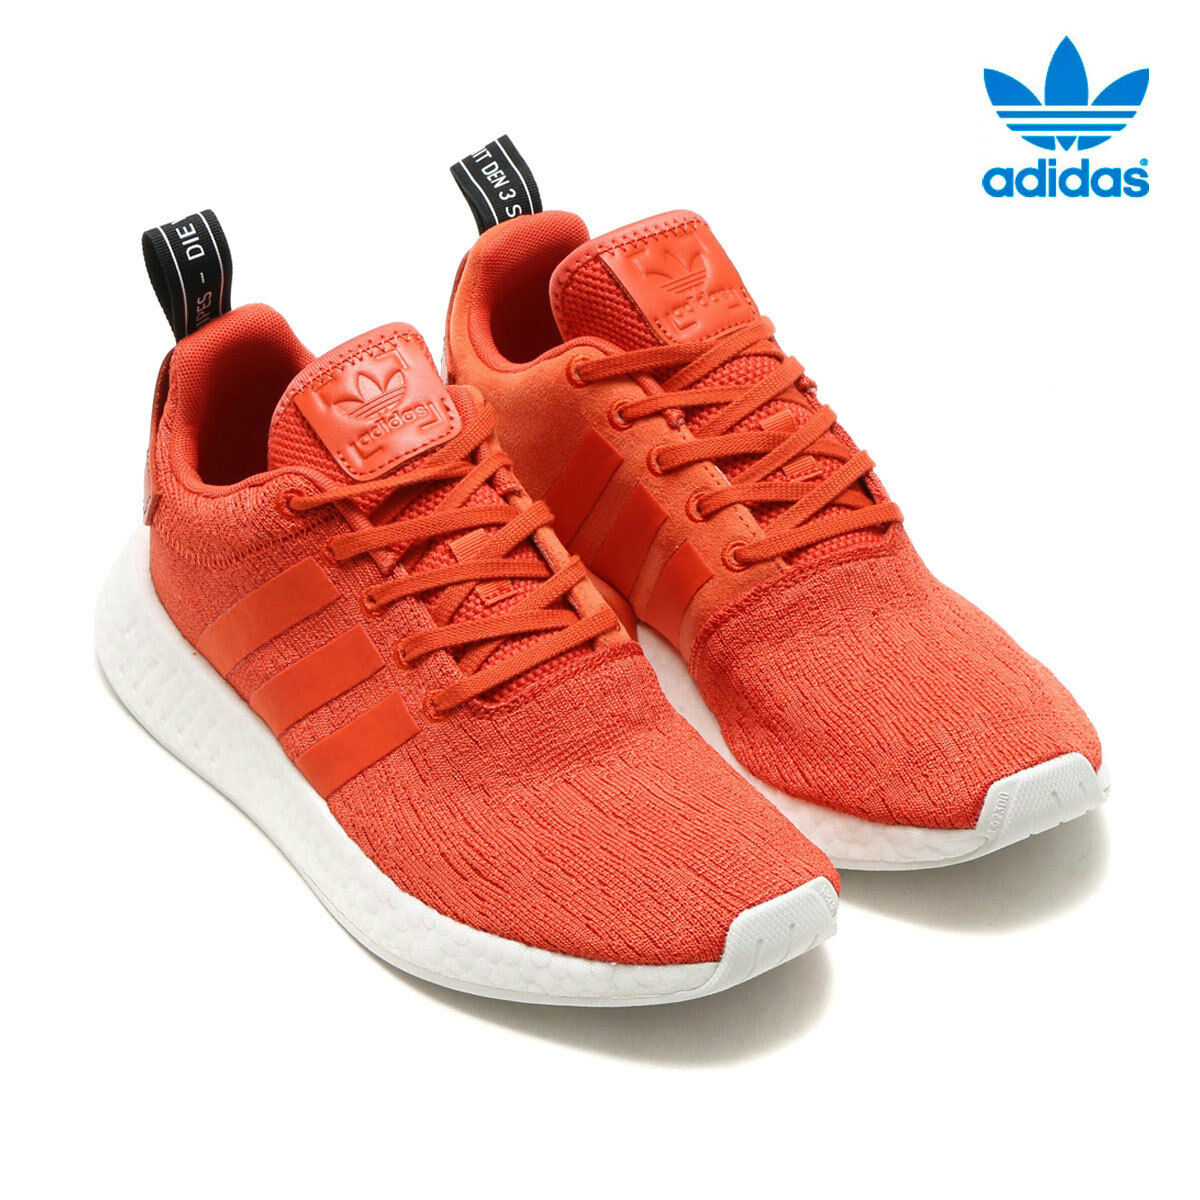 Mens ADIDAS Originals NMD R2 Primeknit Red Sneakers BY9915 NEW